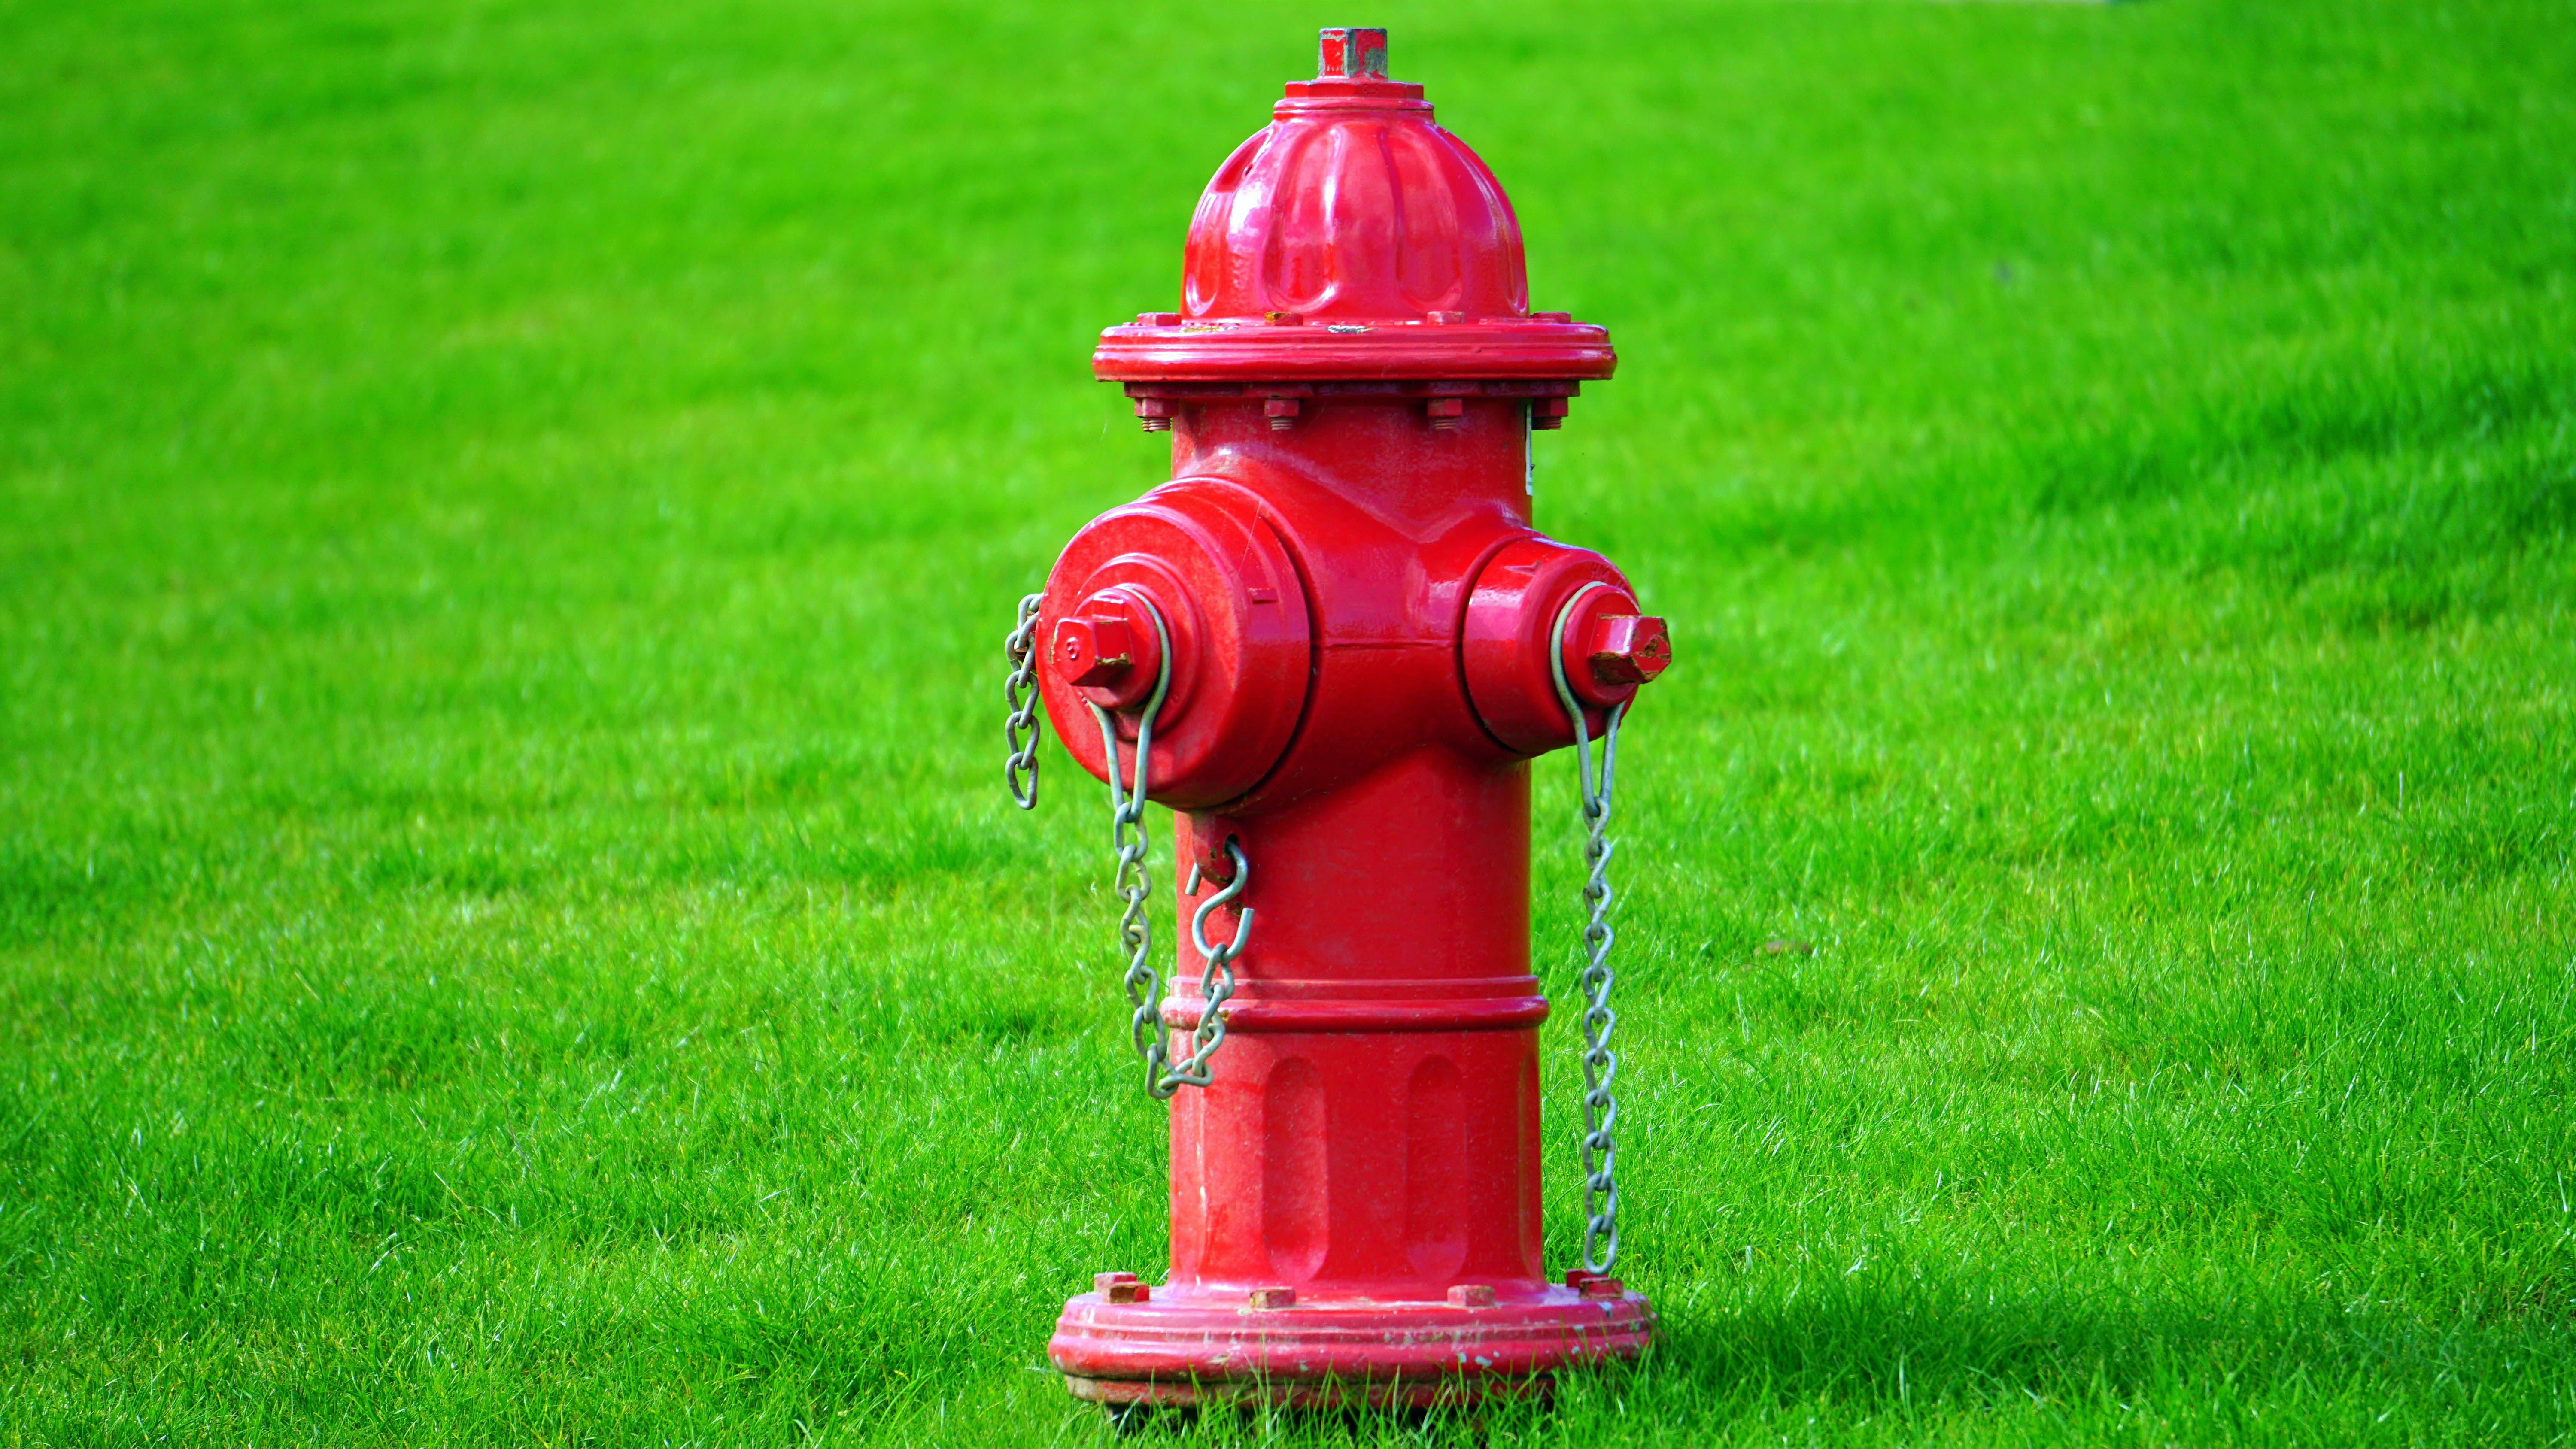 Red Fire Hydrant on Green Grass Field